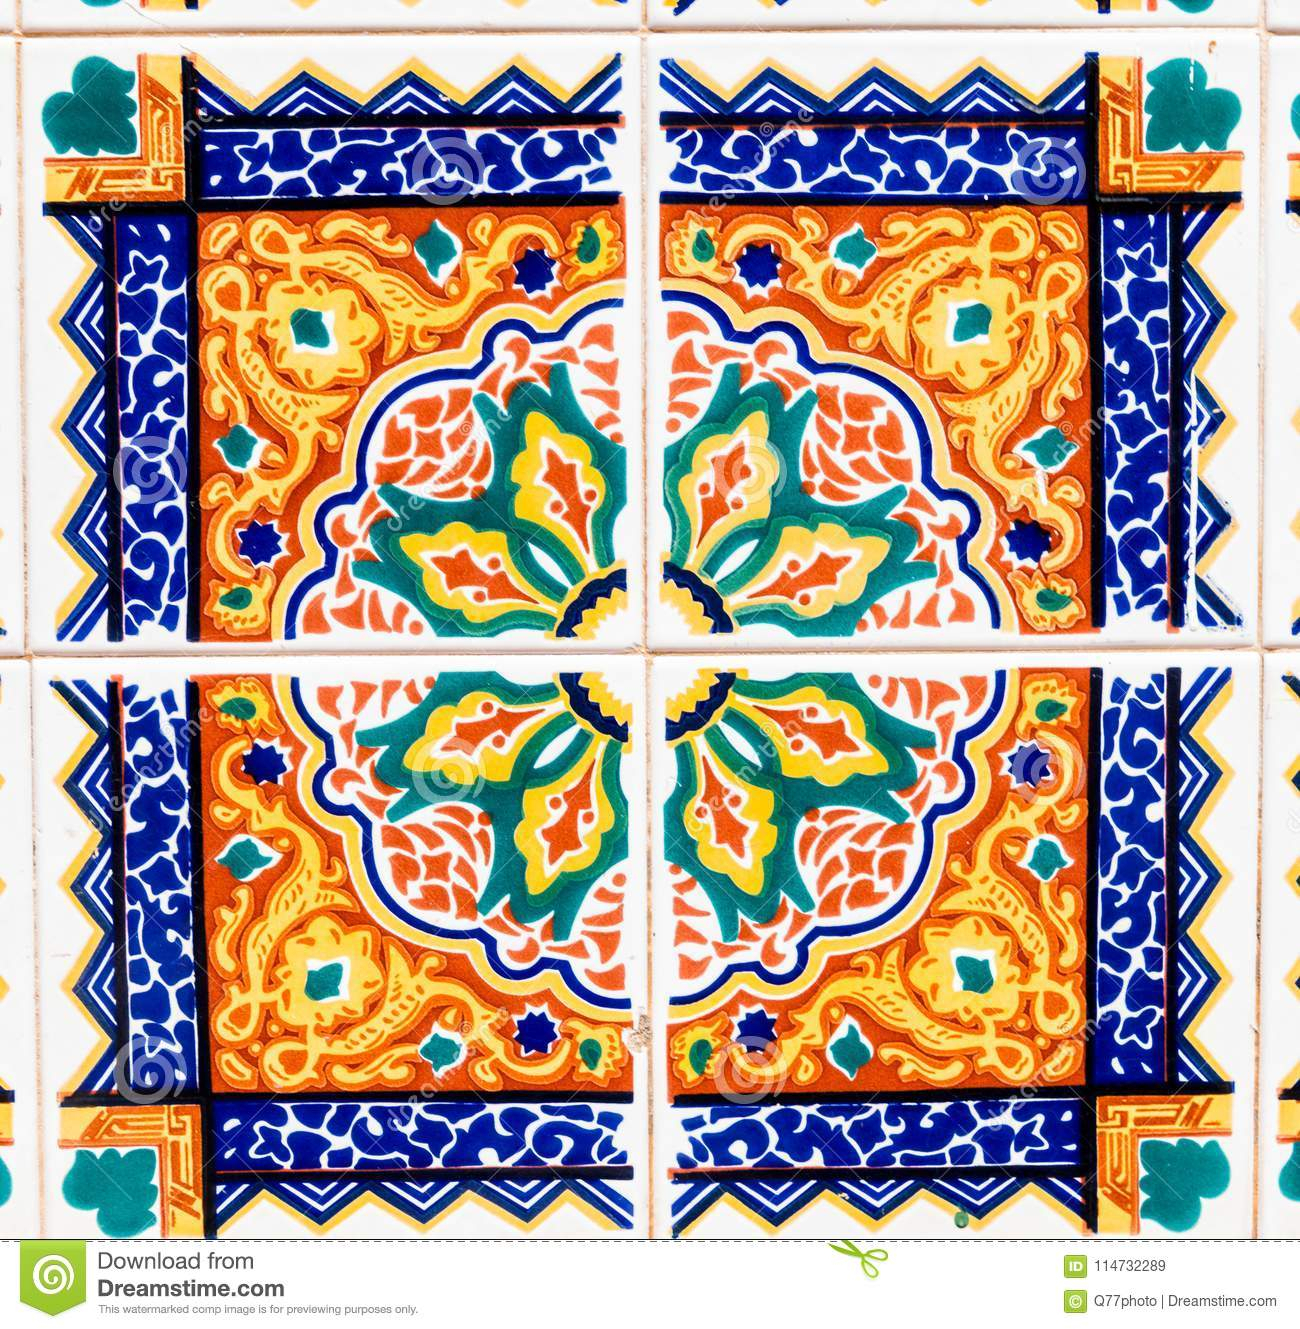 Traditional Ornamental Spanish Decorative Tiles, Original Pertaining To Spanish Ornamental Wall Decor (View 24 of 30)